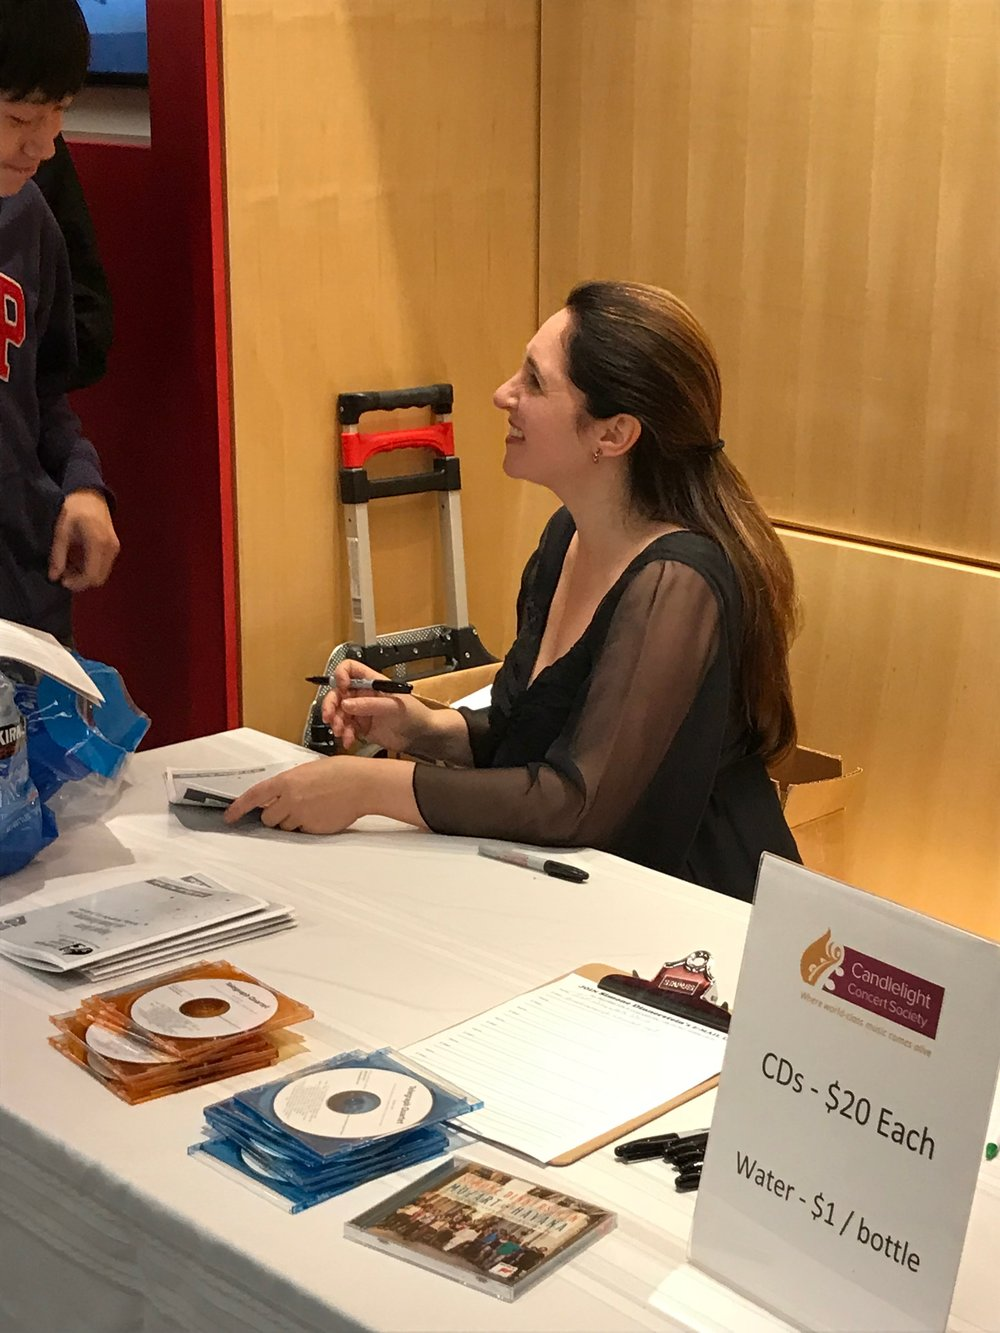 Simone Dinnerstein signing autographs after the concert. Photo by author.